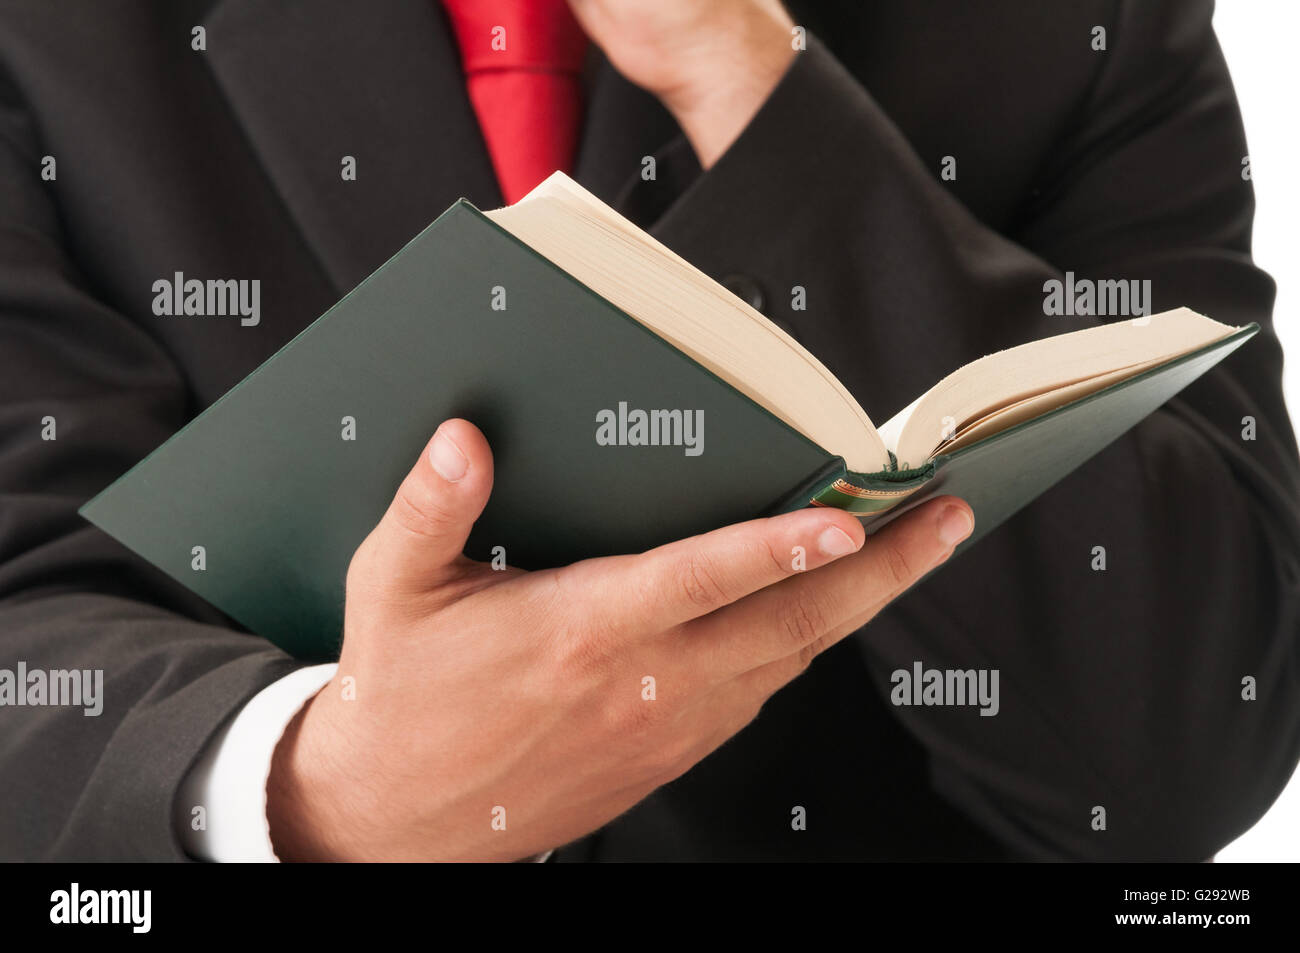 Business man or lawyer hand holding a book - Stock Image